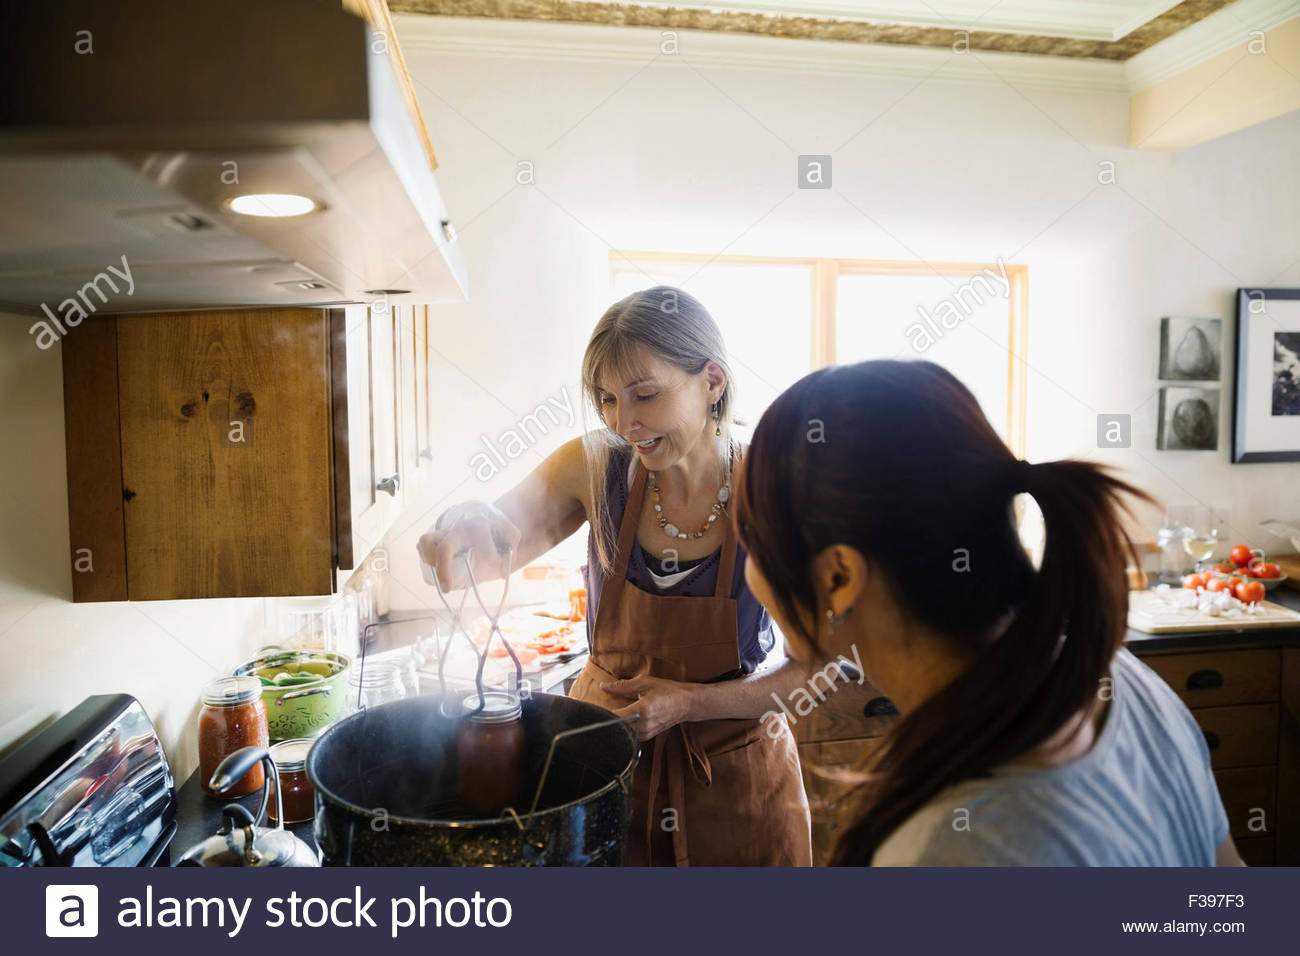 Women canning at stove in kitchen - Stock Image